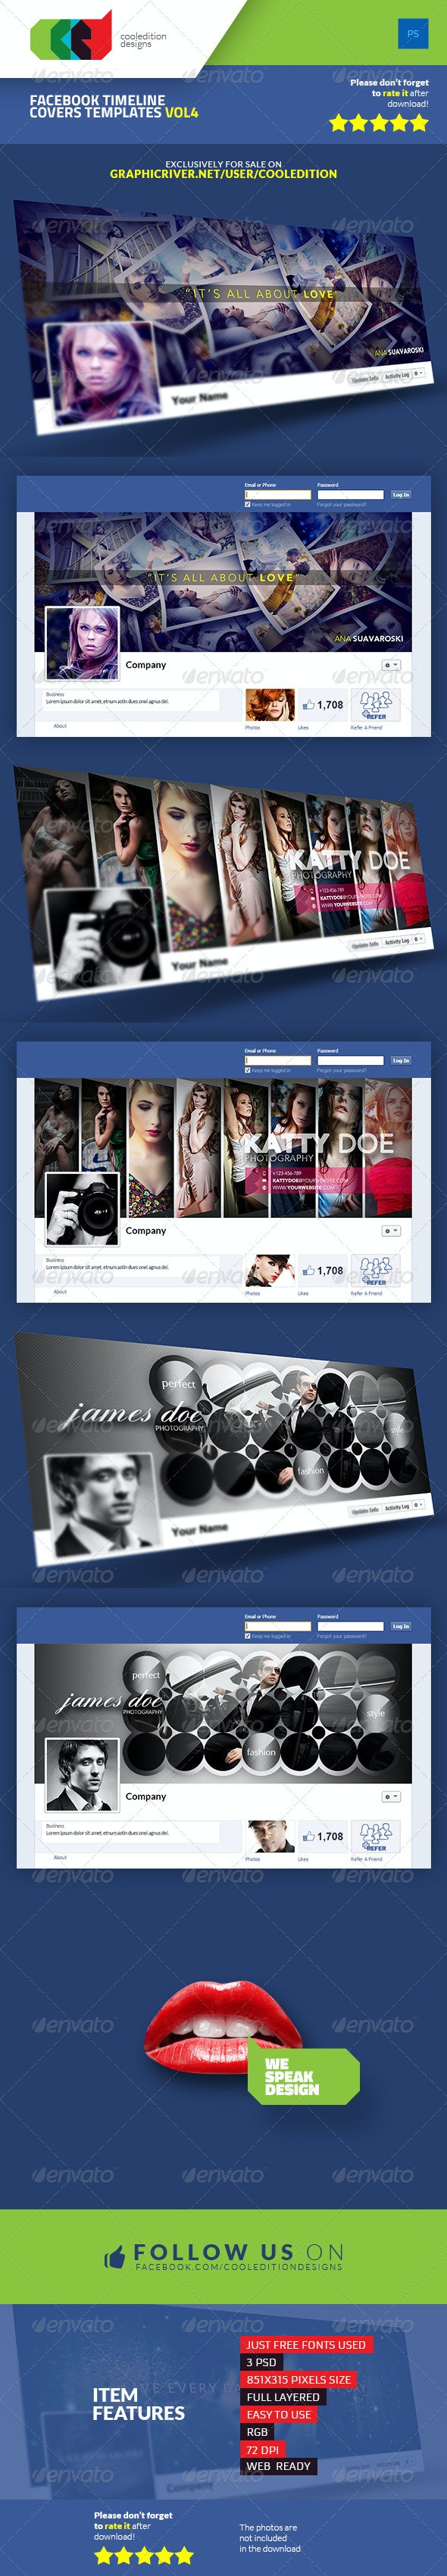 Facebook Timeline Covers Templates VOL4 - Facebook Timeline Covers Social Media